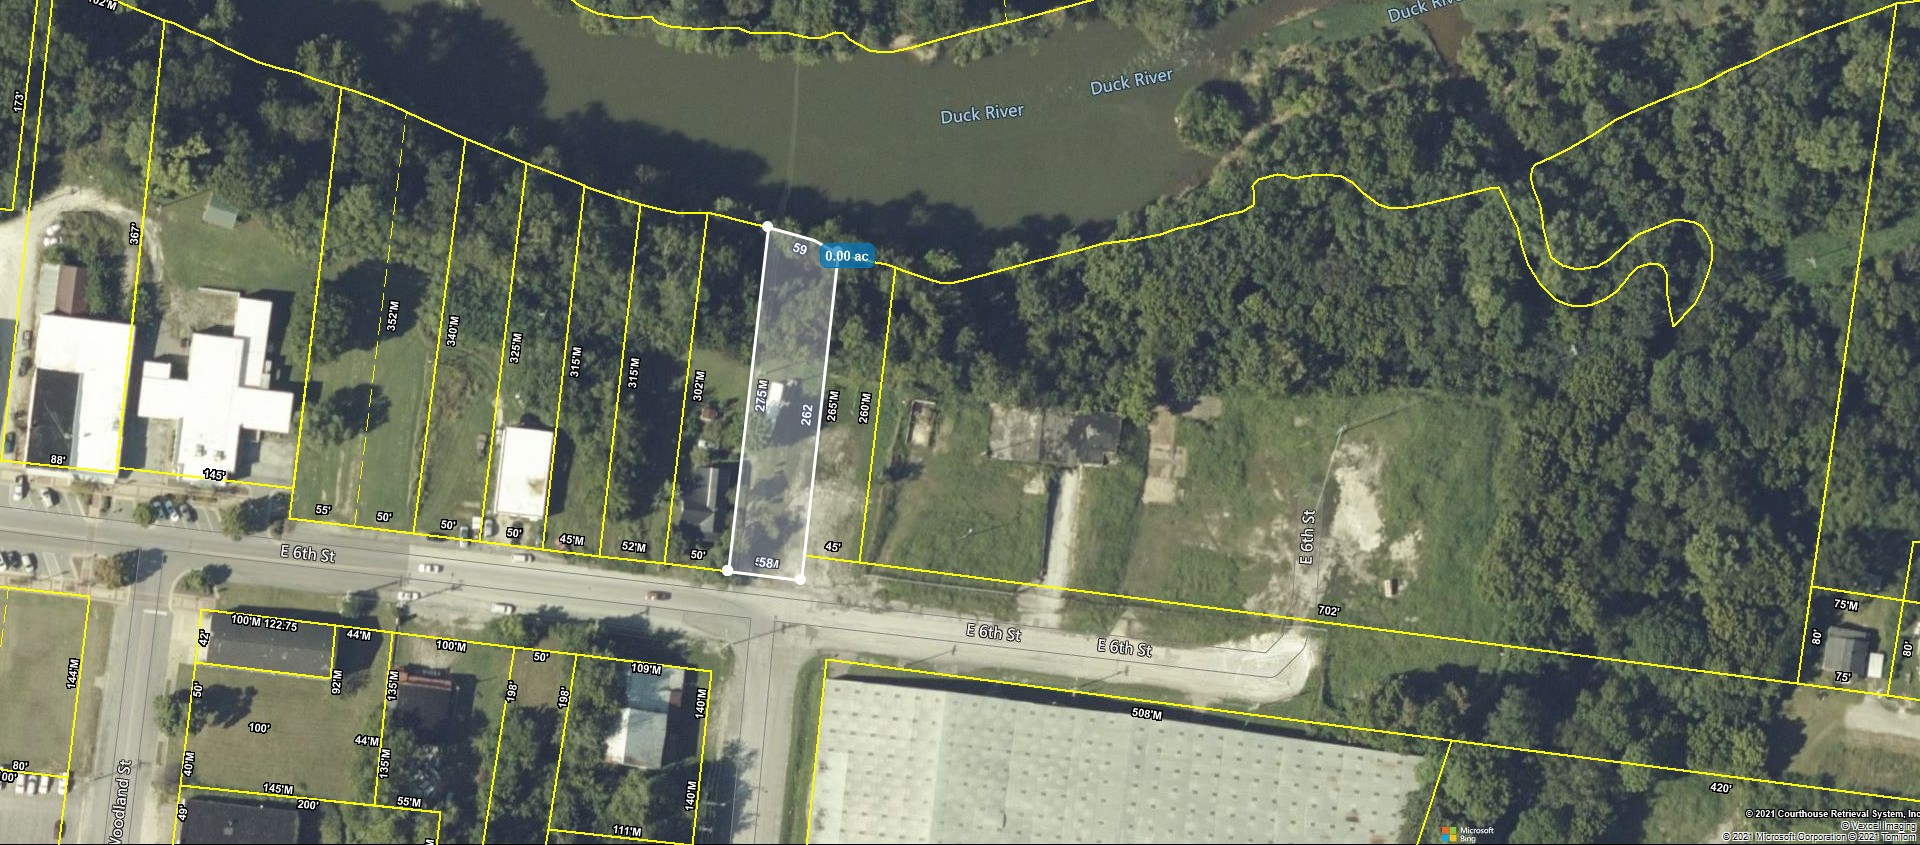 SITE CONSIST OF: 219 E 6th St & 301 E 6th St. Map & Parcels: 099A A 009.00 & 099A A 008.00 Downtown Columbia Re-Development Site. .6 of an acre in downtown Columbia ready to be developed into office, retail, or live/work project. Walking distance from the downtown business district of Columbia. Create an office or two level building with great views of the Duck River!!